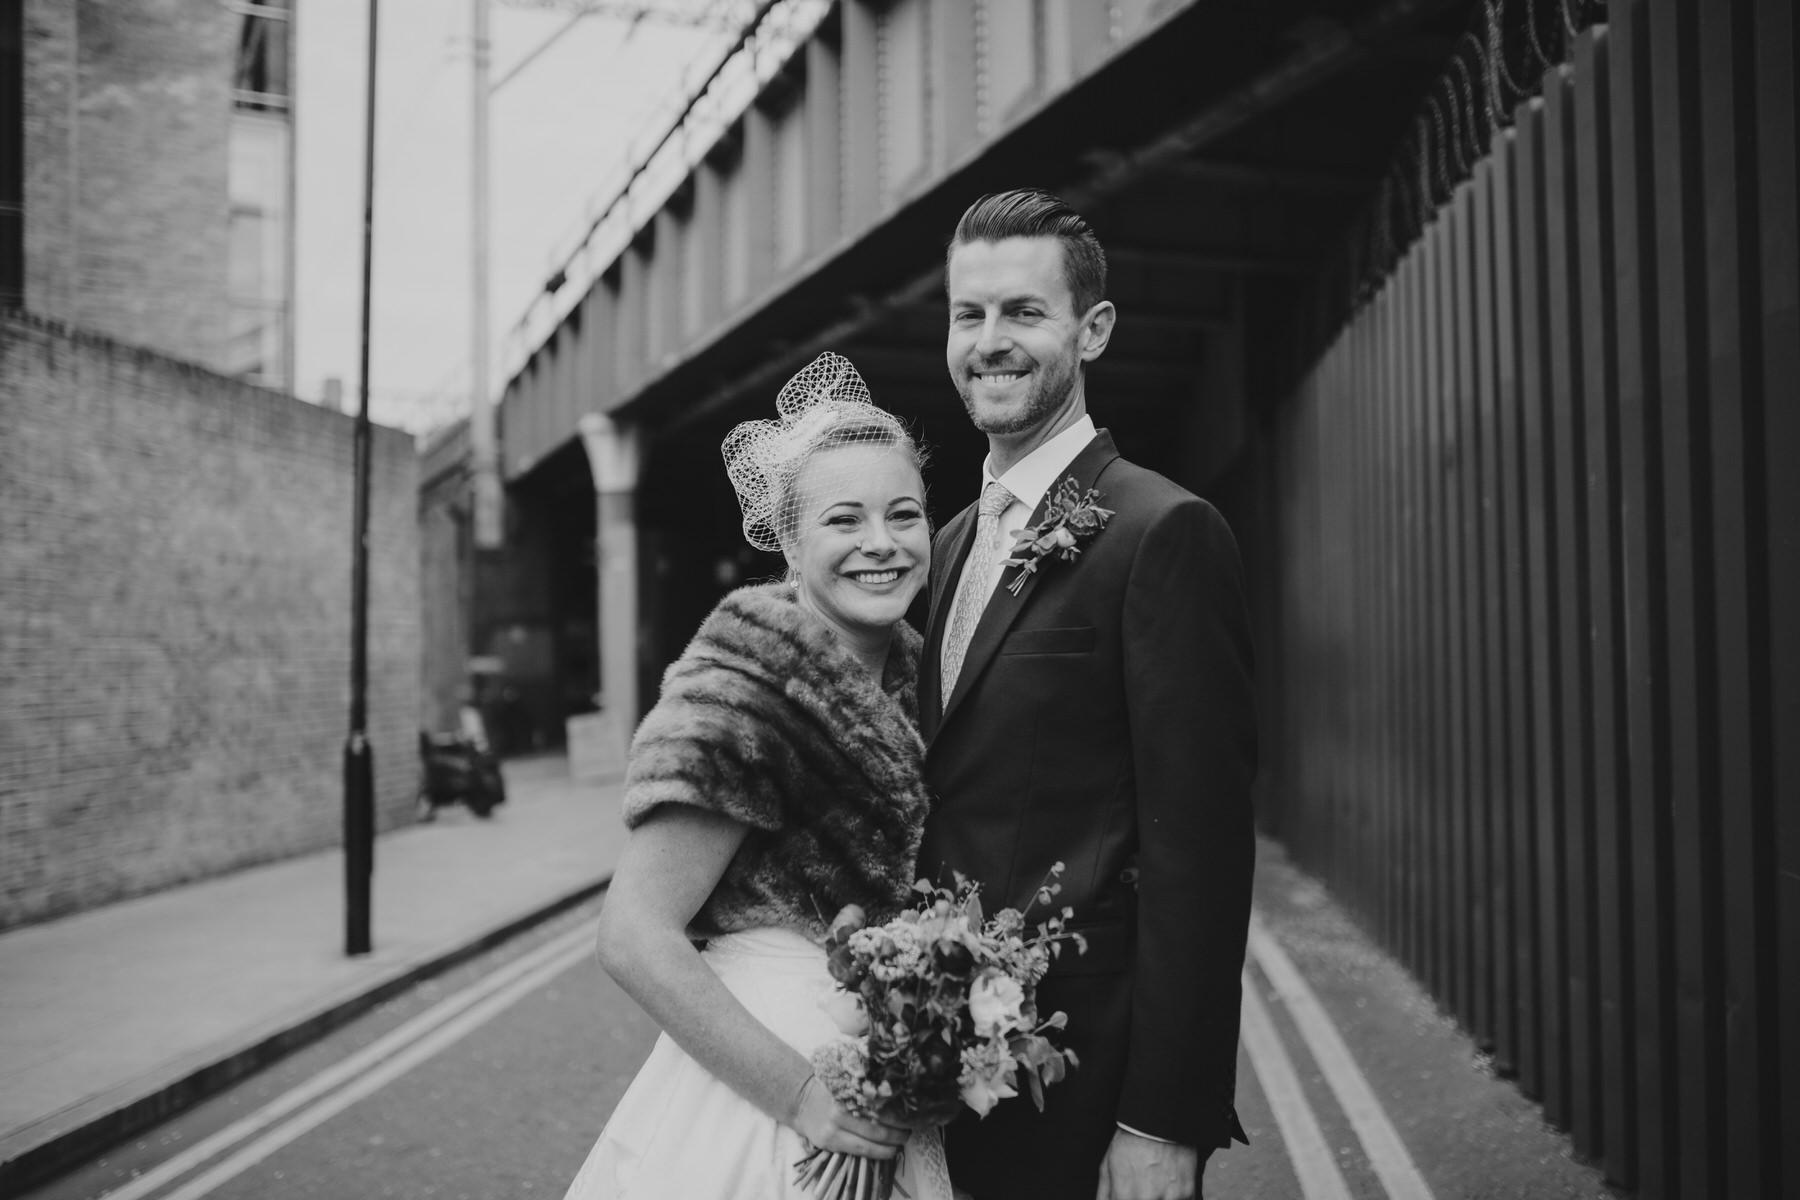 MS-Londesborough-Pub-wedding-Hackney-alternative-photographer-75-BW-urban-wedding-portrait-bride-groom-under-railway-bridge.jpg